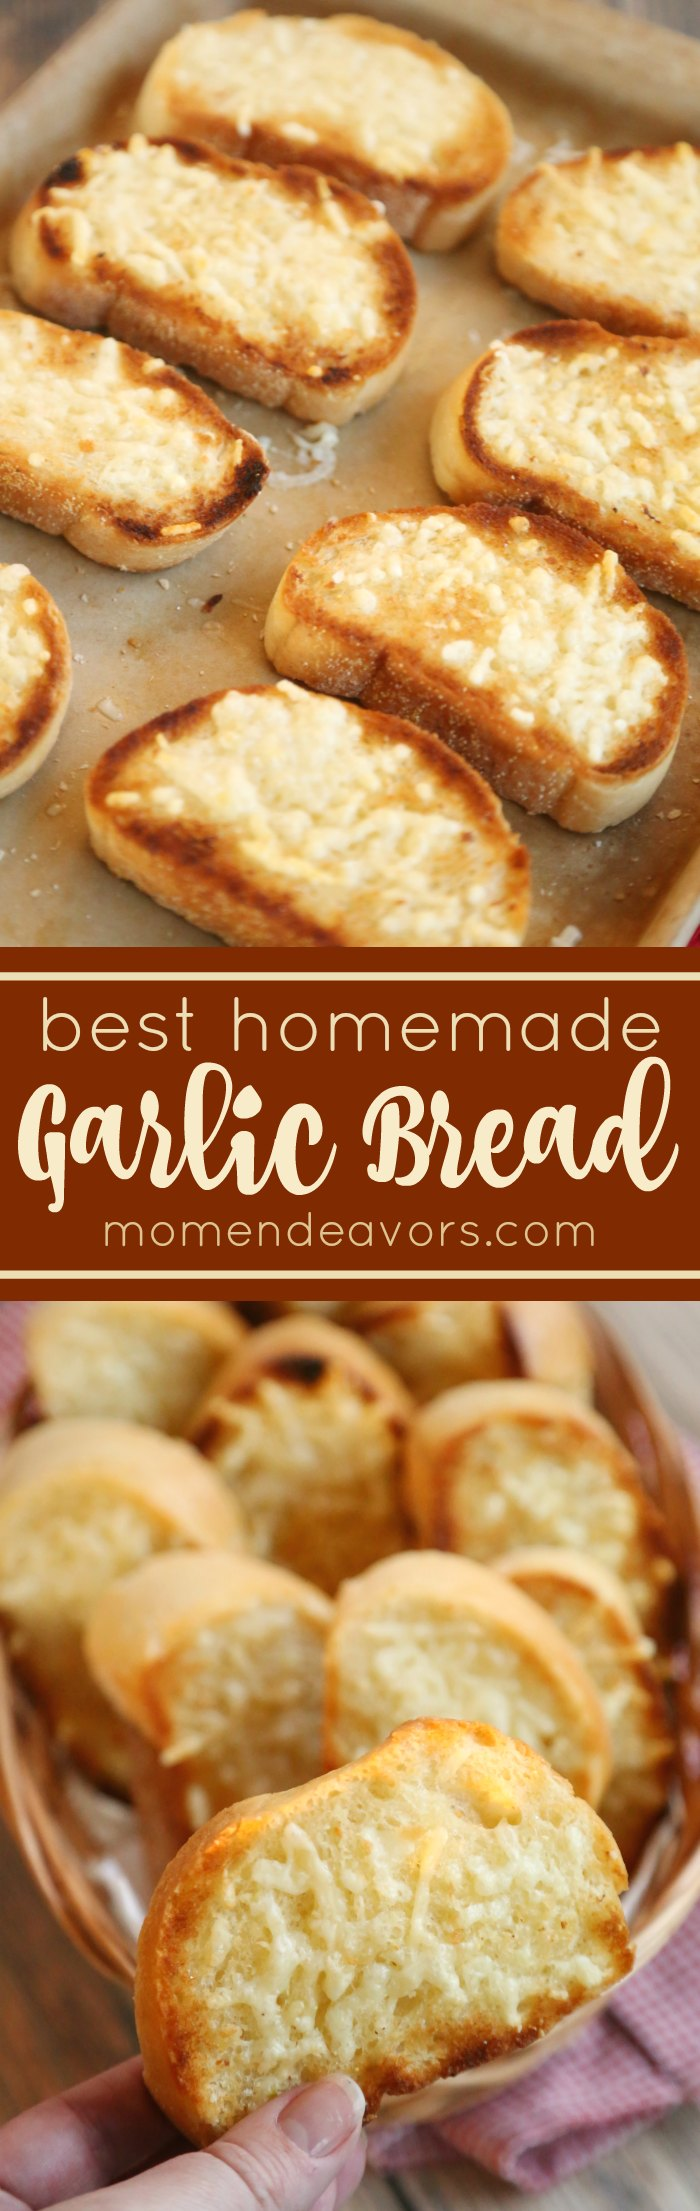 Best Homemade Garlic Bread Recipe